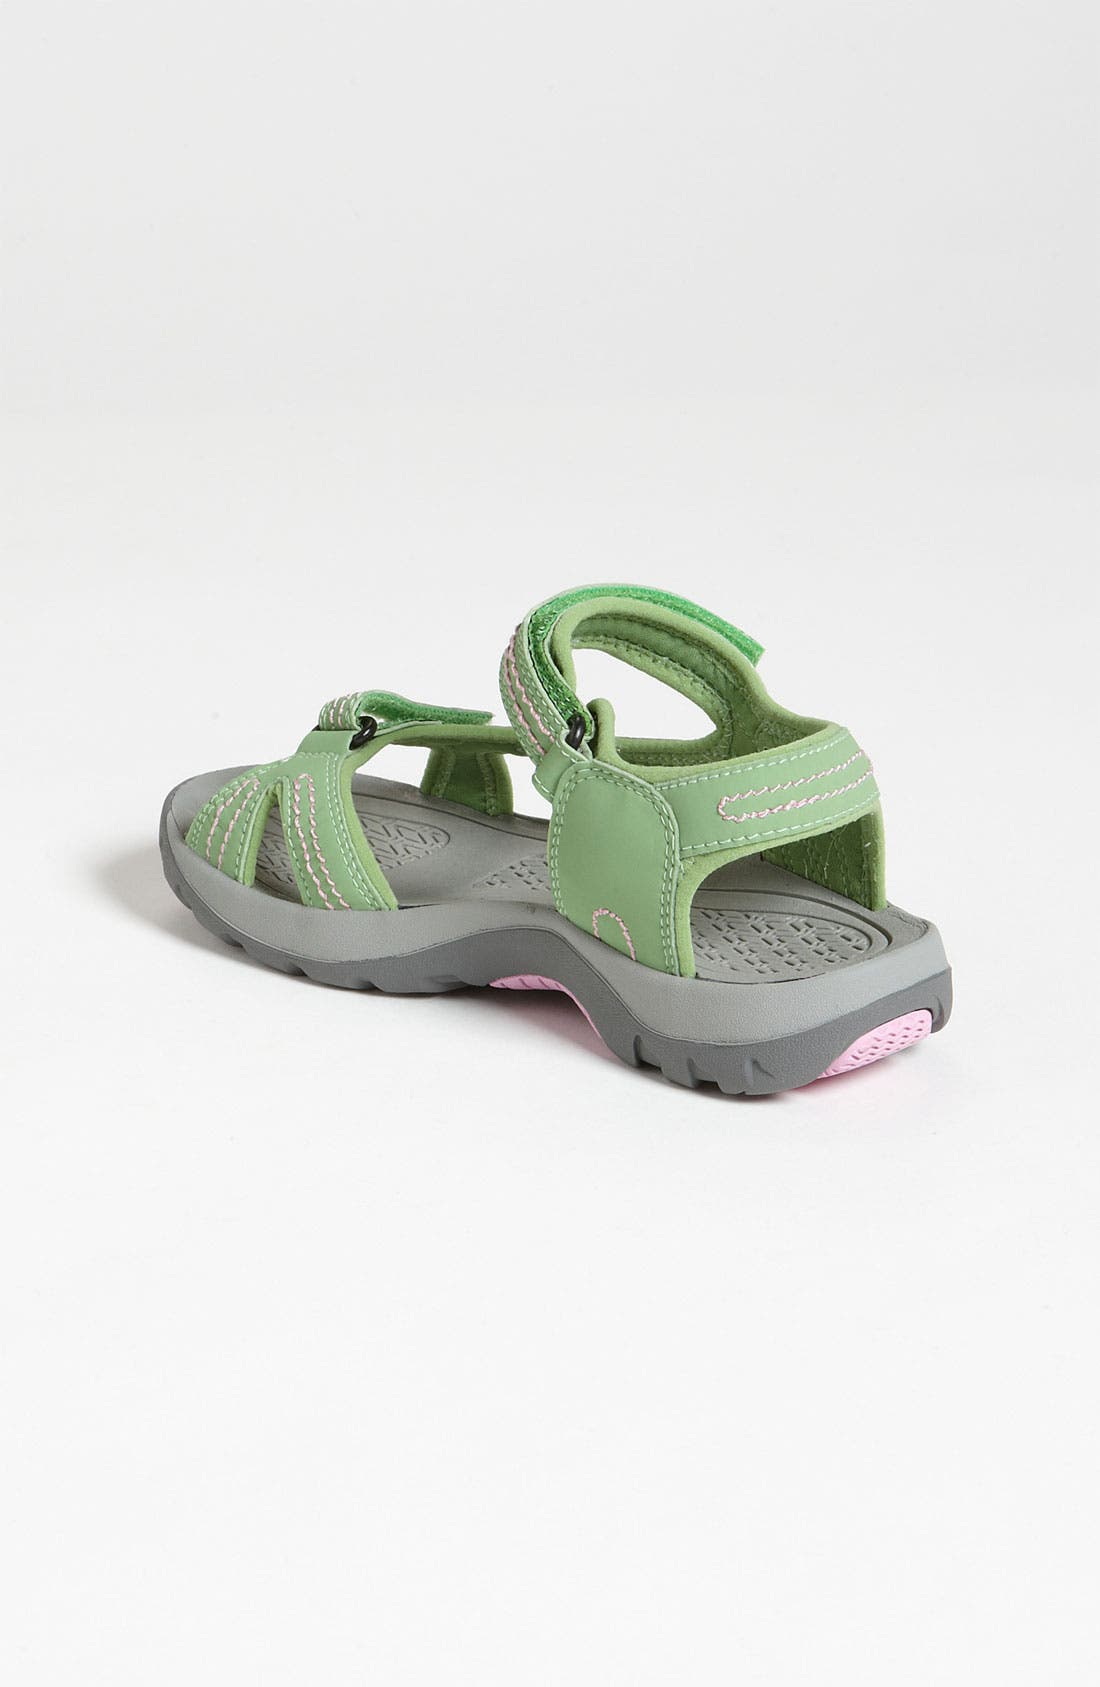 Alternate Image 2  - Keen 'Jura' Sandal (Toddler, Little Kid & Big Kid)